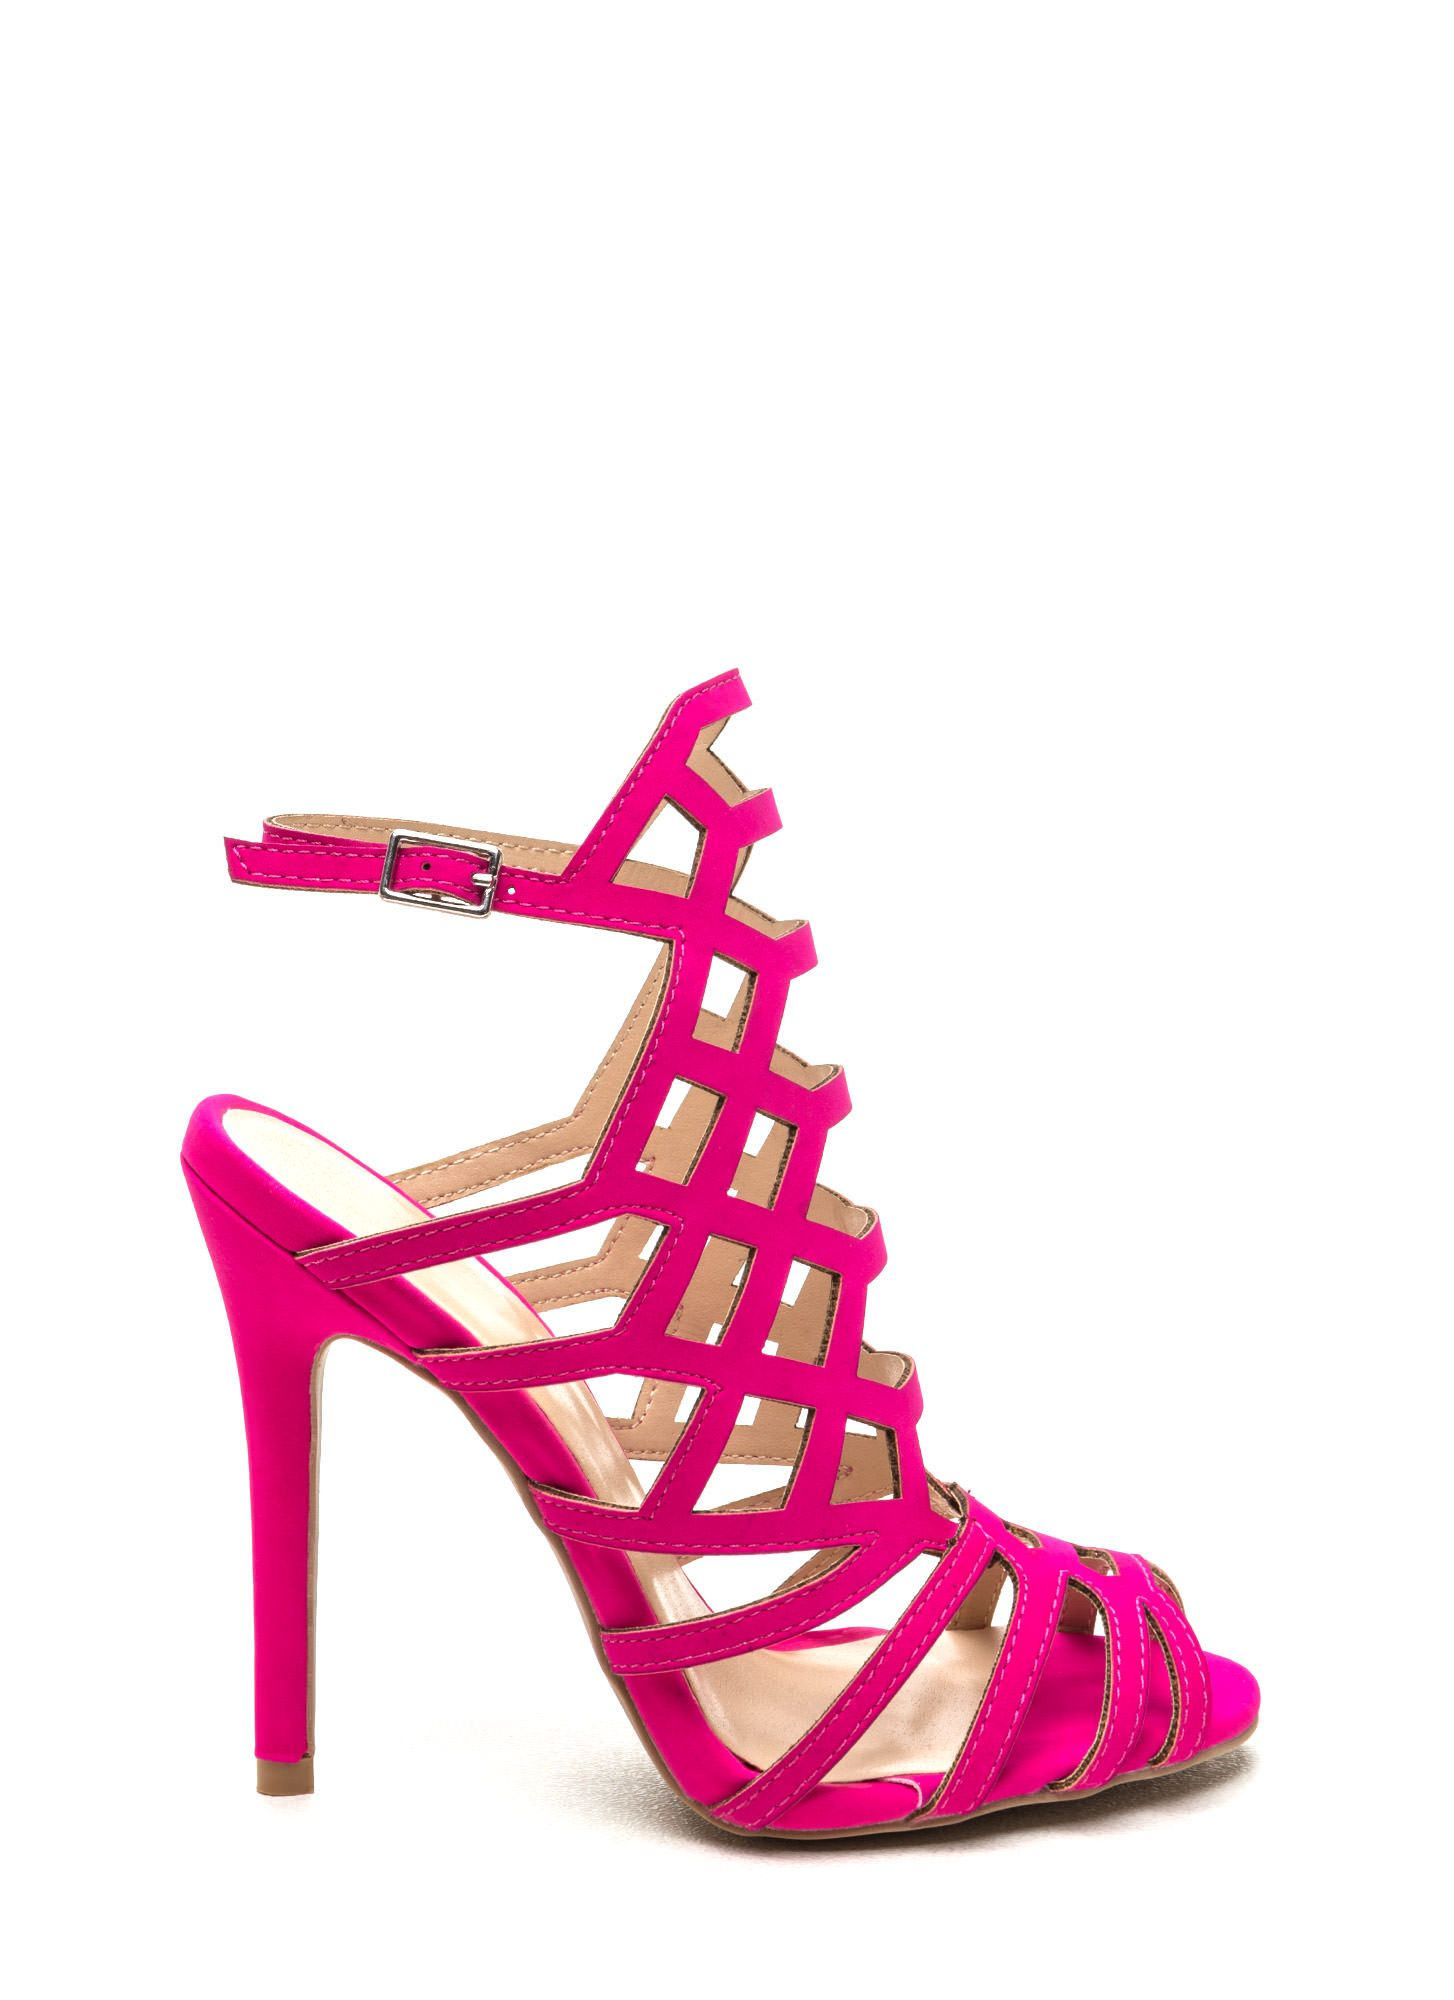 Pink strappy high heels, Pink strappy